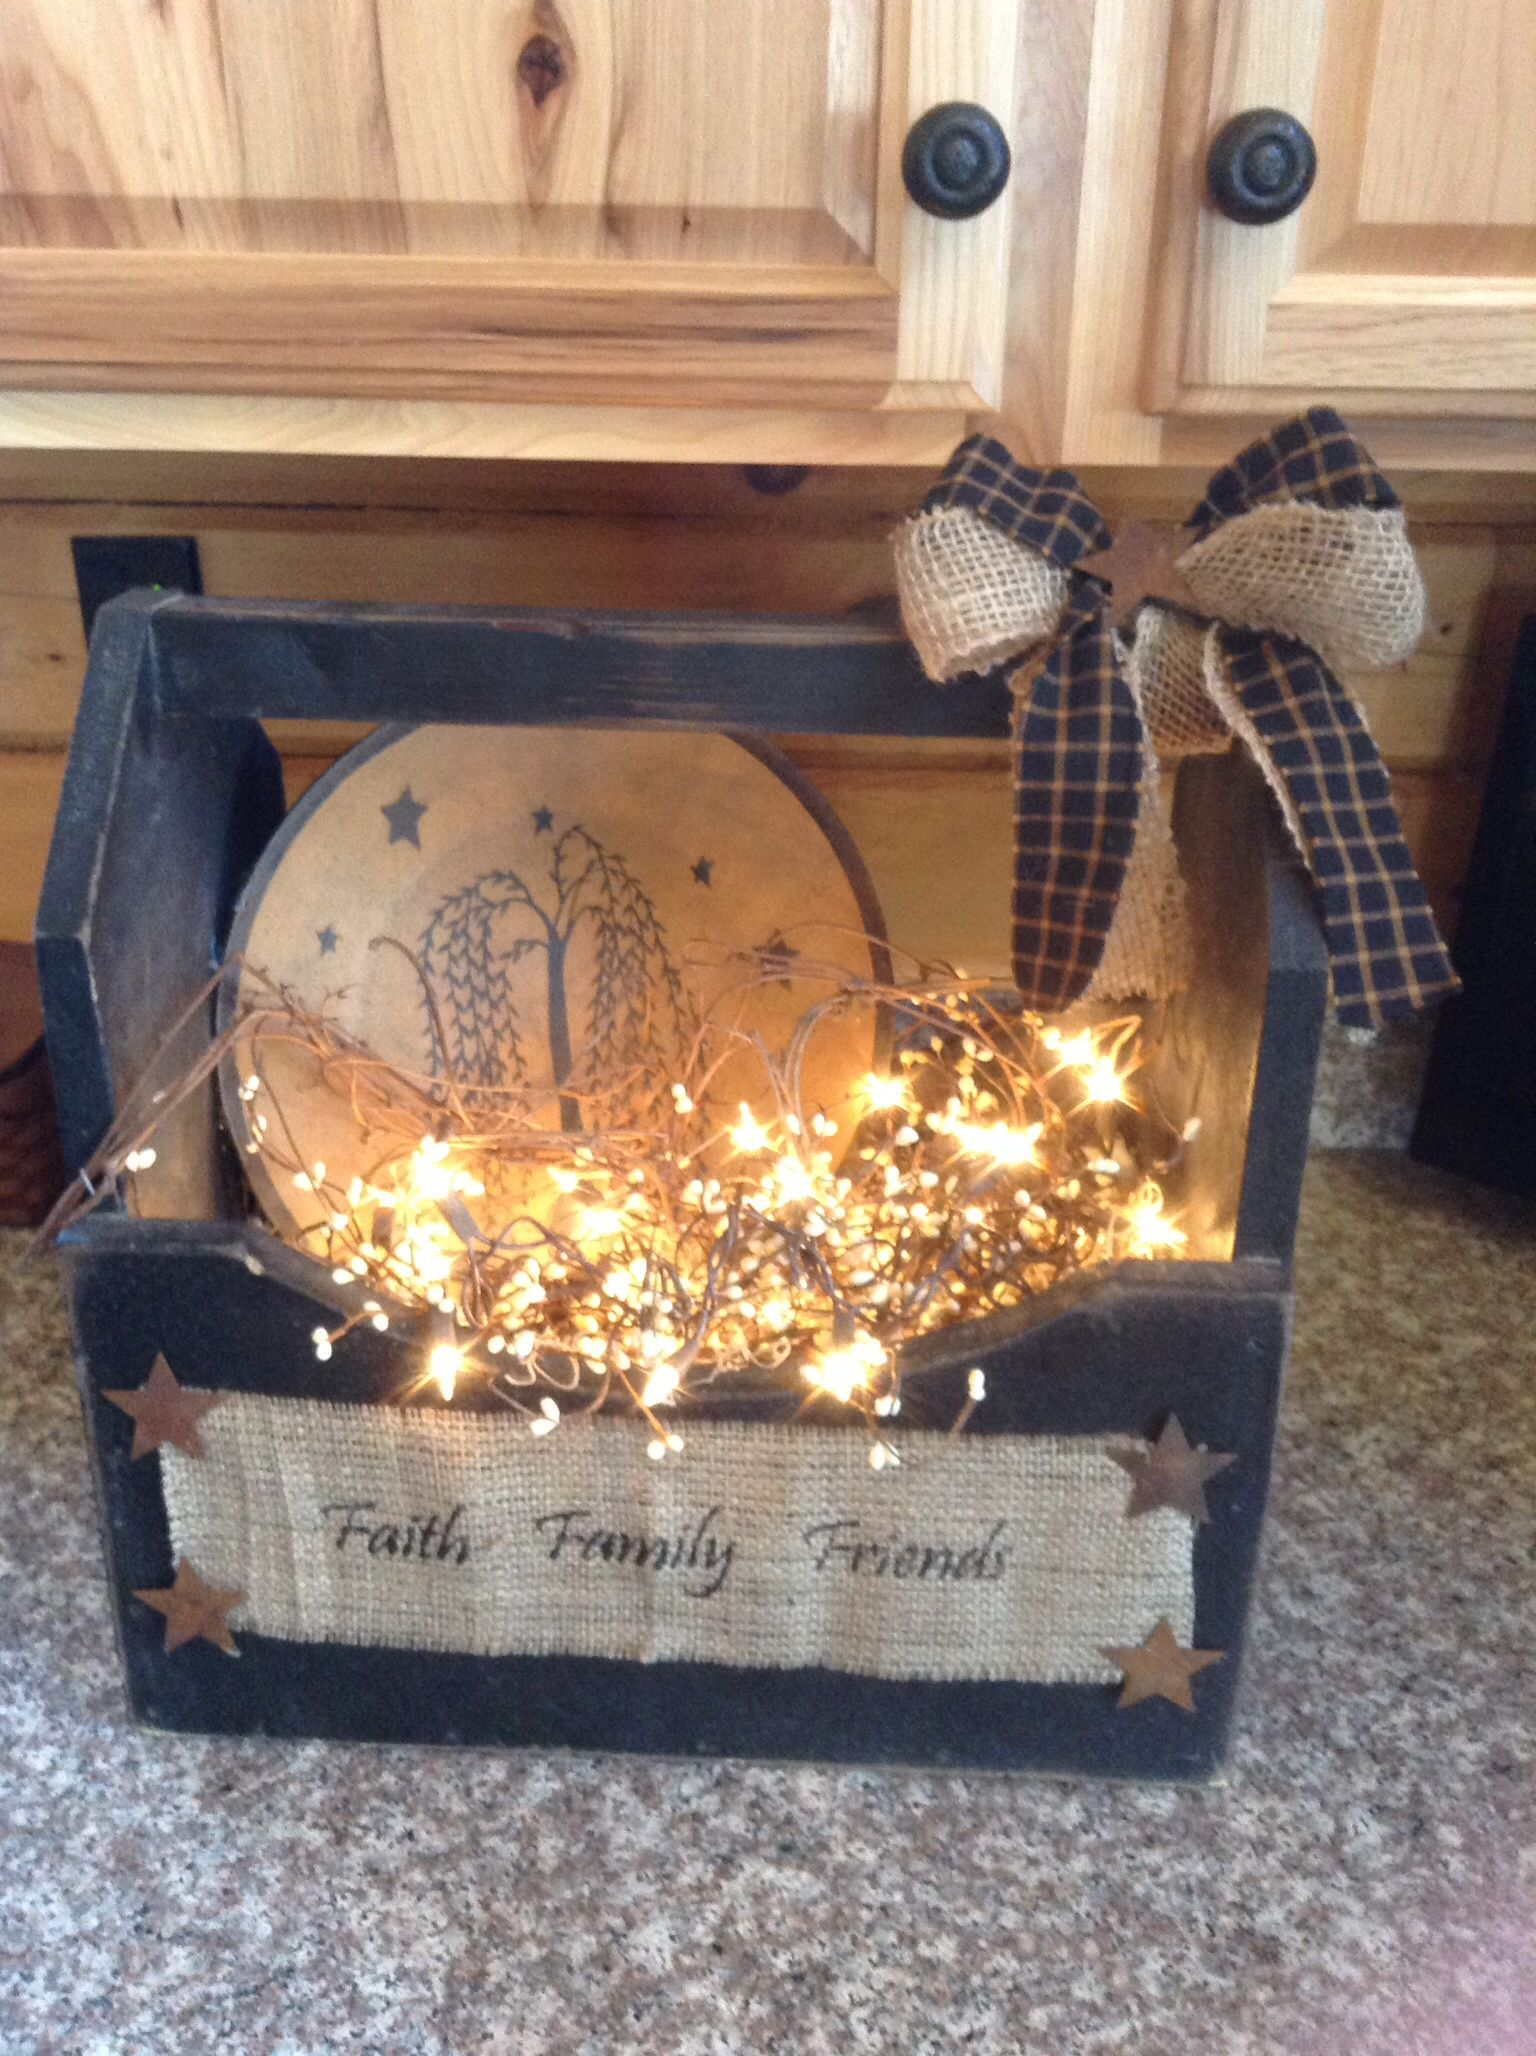 Old black primitive box with willow plate, berries and lights.